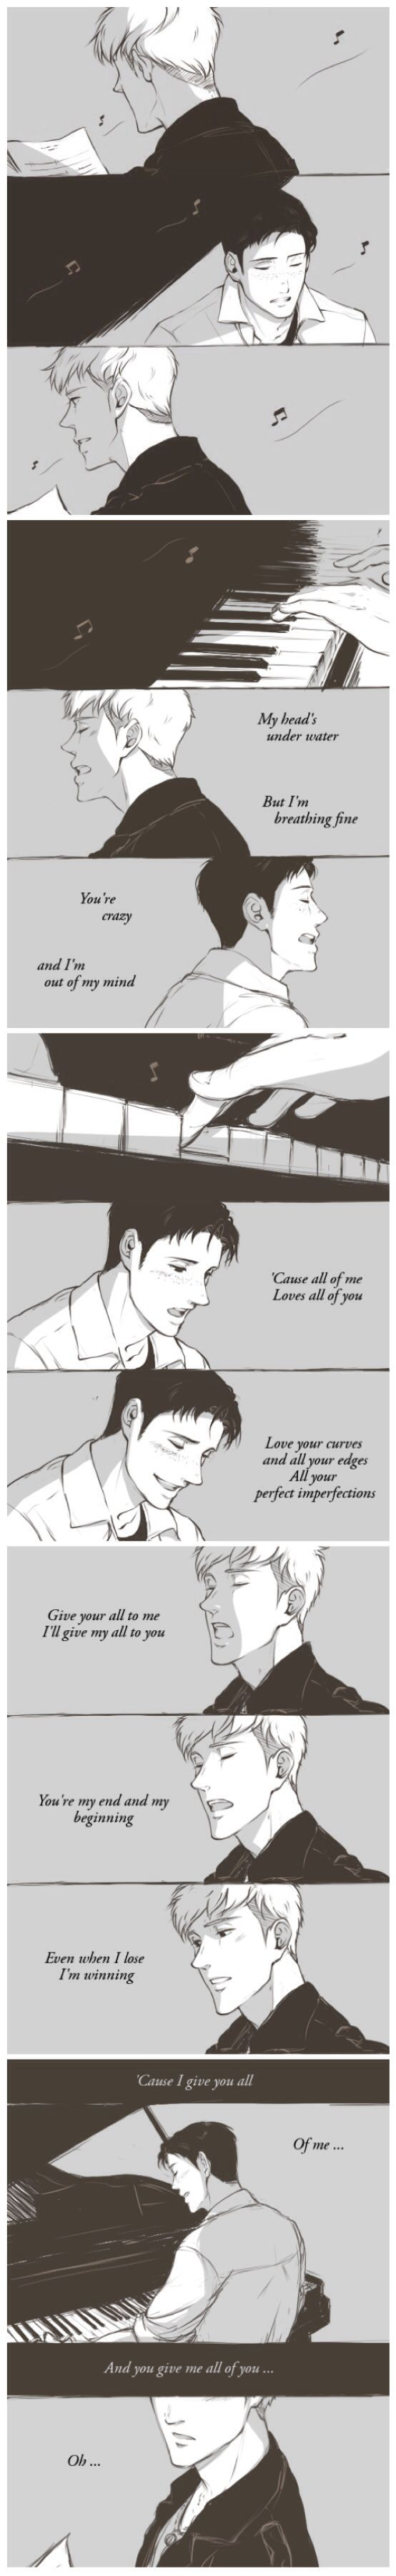 """SNK-""""Sing for them"""" (College/Reincarnation Au where Marco sings sad love songs for someone he can't remember and Jean tries to hide the past and his regret.)"""